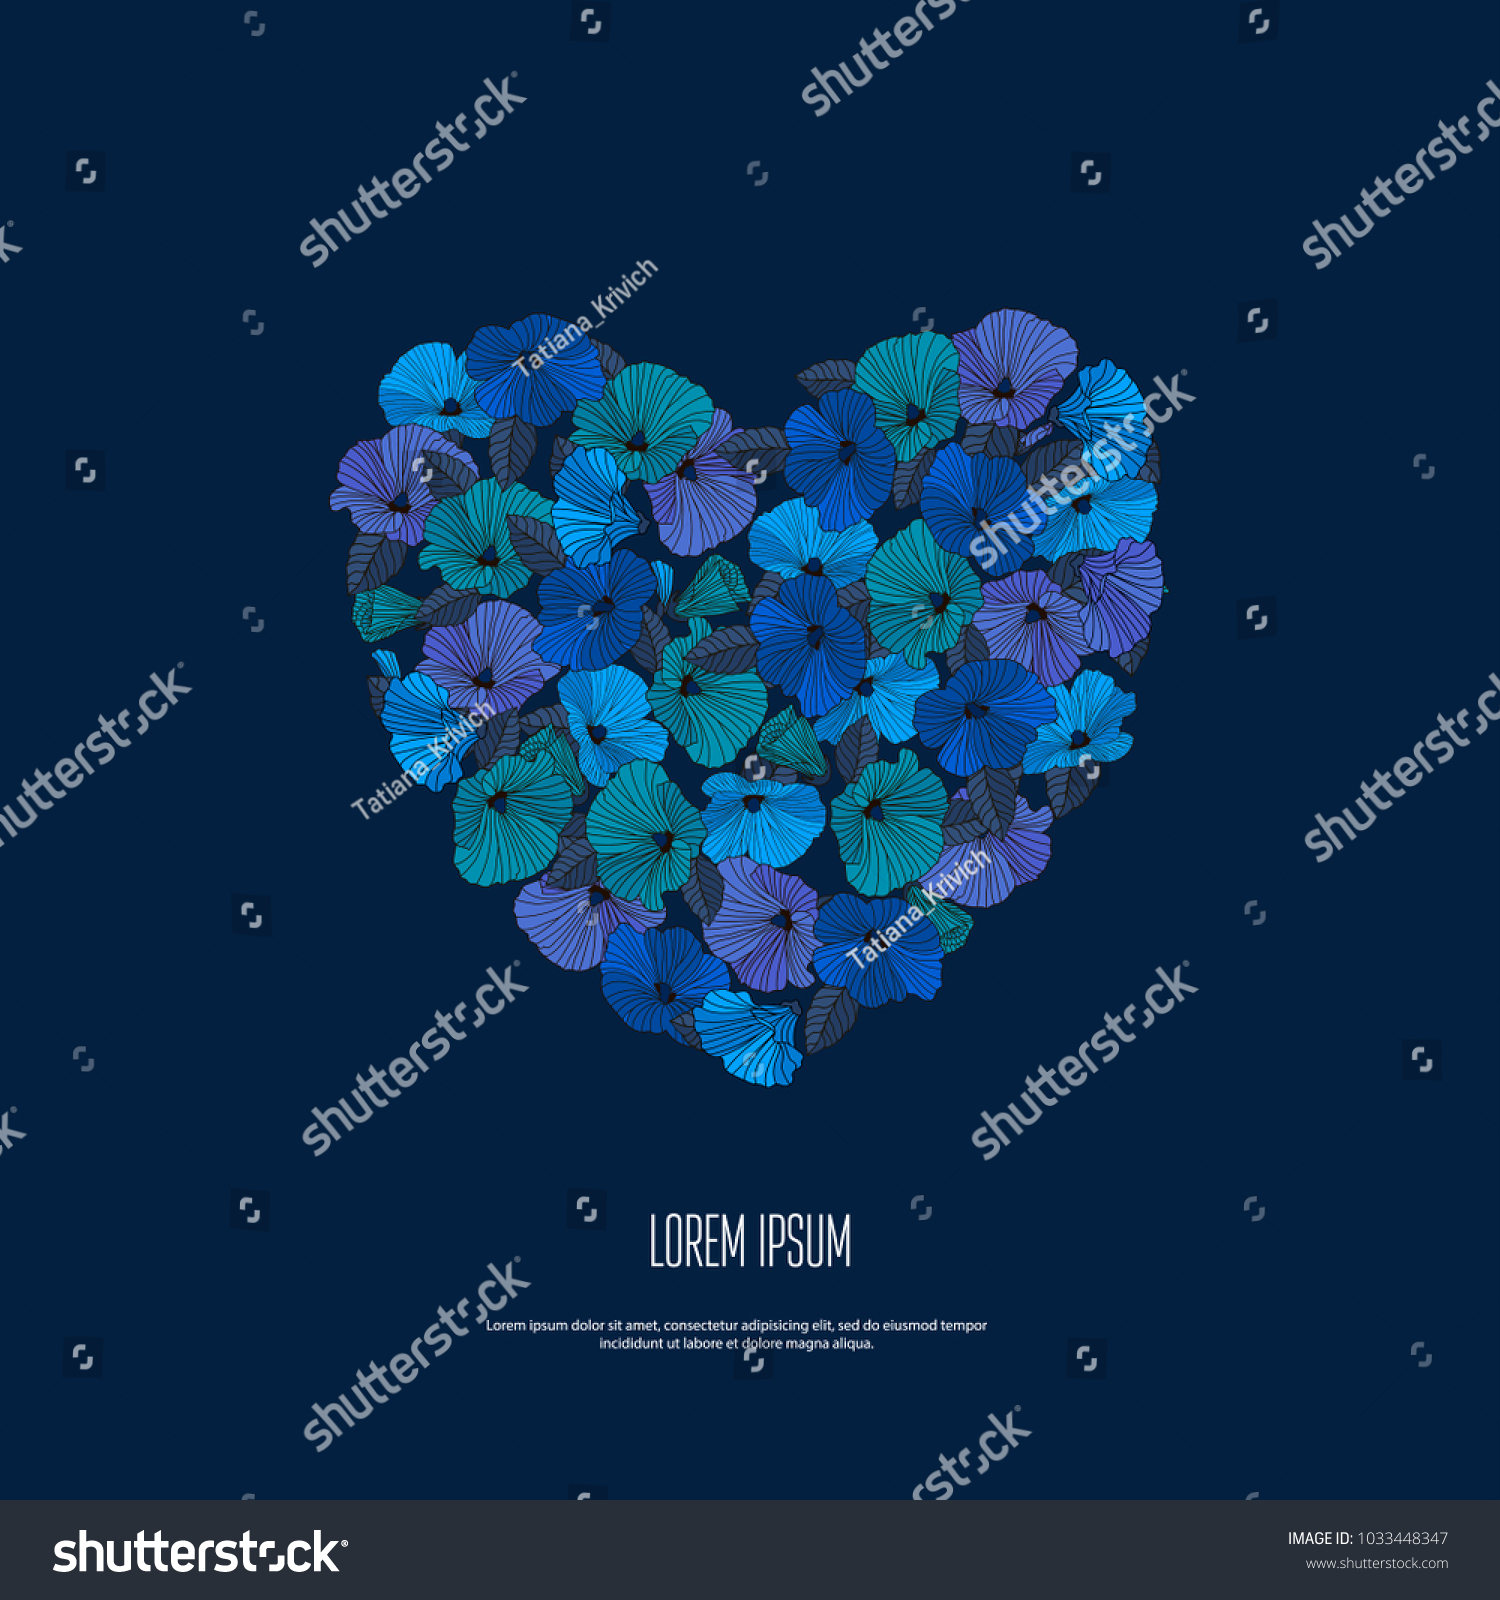 Romantic card garland abstract blue flowers stock illustration romantic card garland of abstract blue flowers with contours on dark background in shape of izmirmasajfo